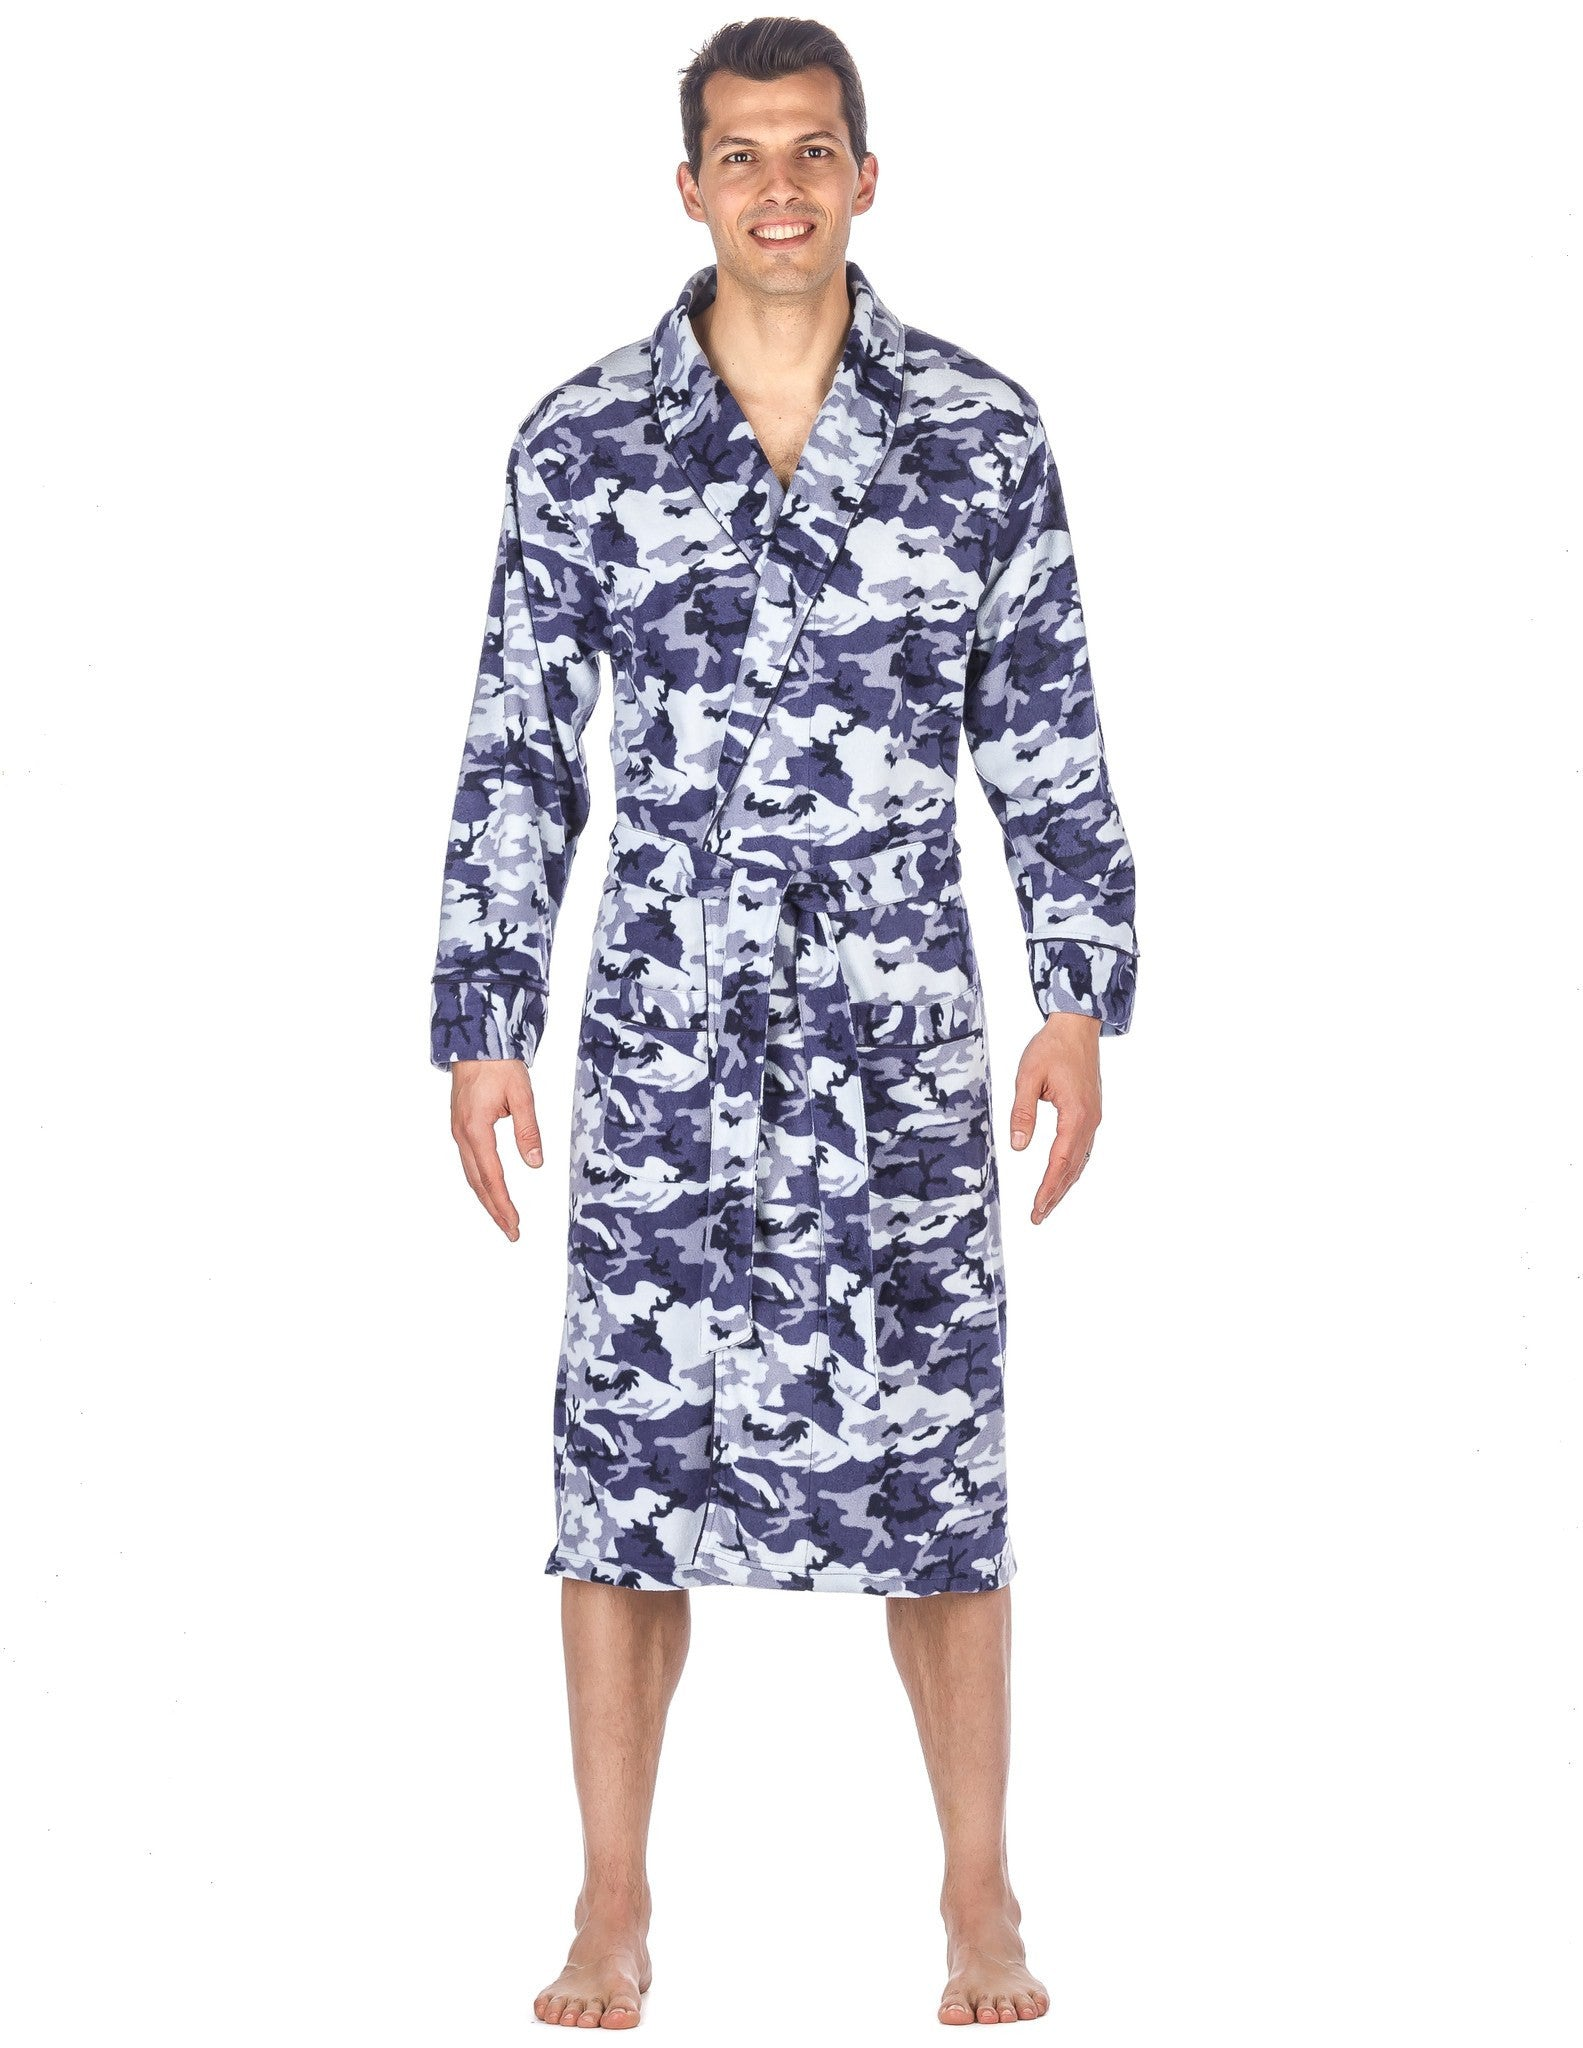 Men's Microfleece Robe